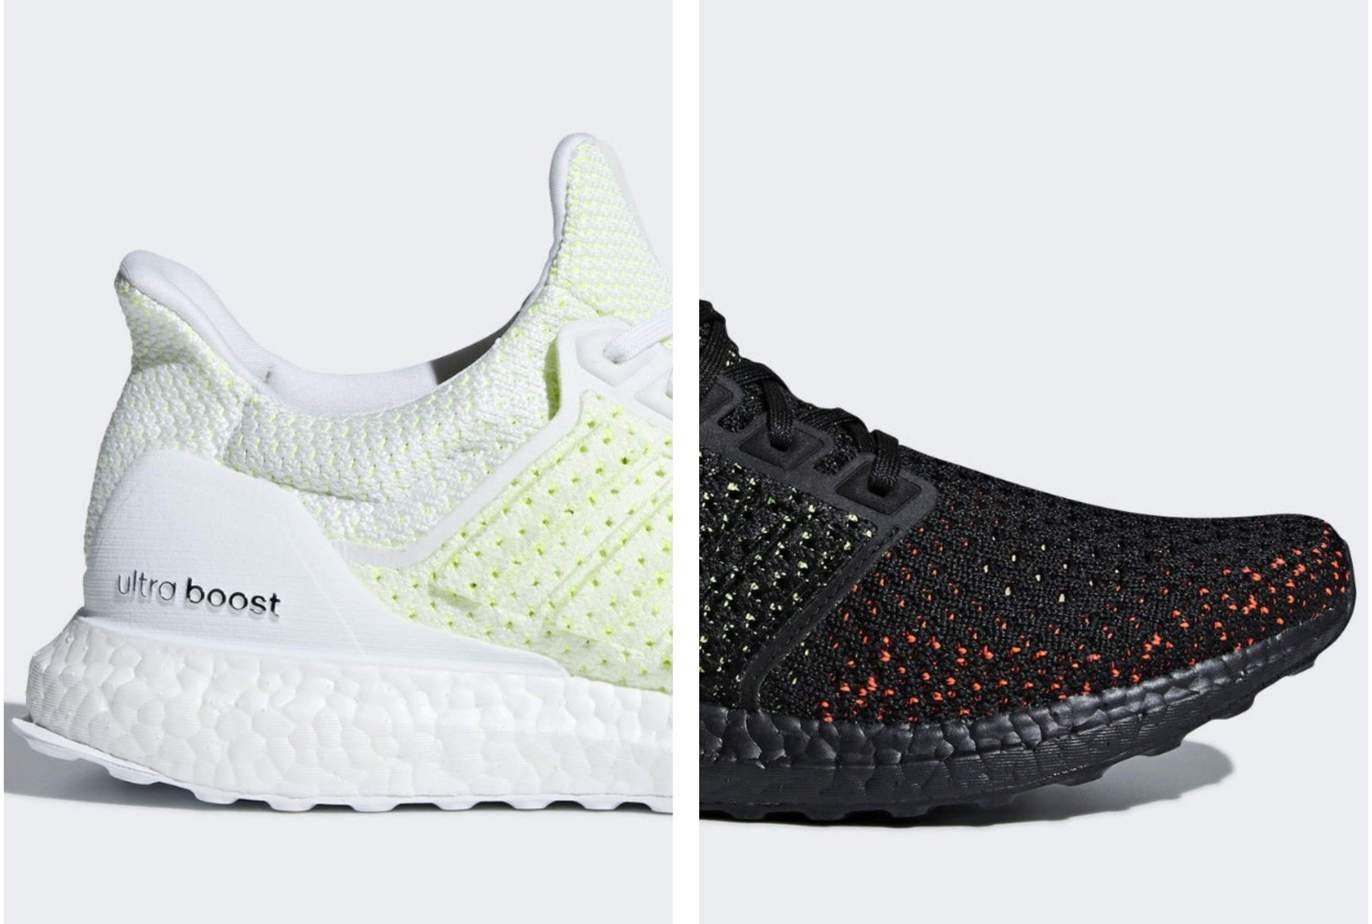 2502983c7cf260 ... great site for all shoes half off The adidas Ultra Boost Clima is off  to an ...